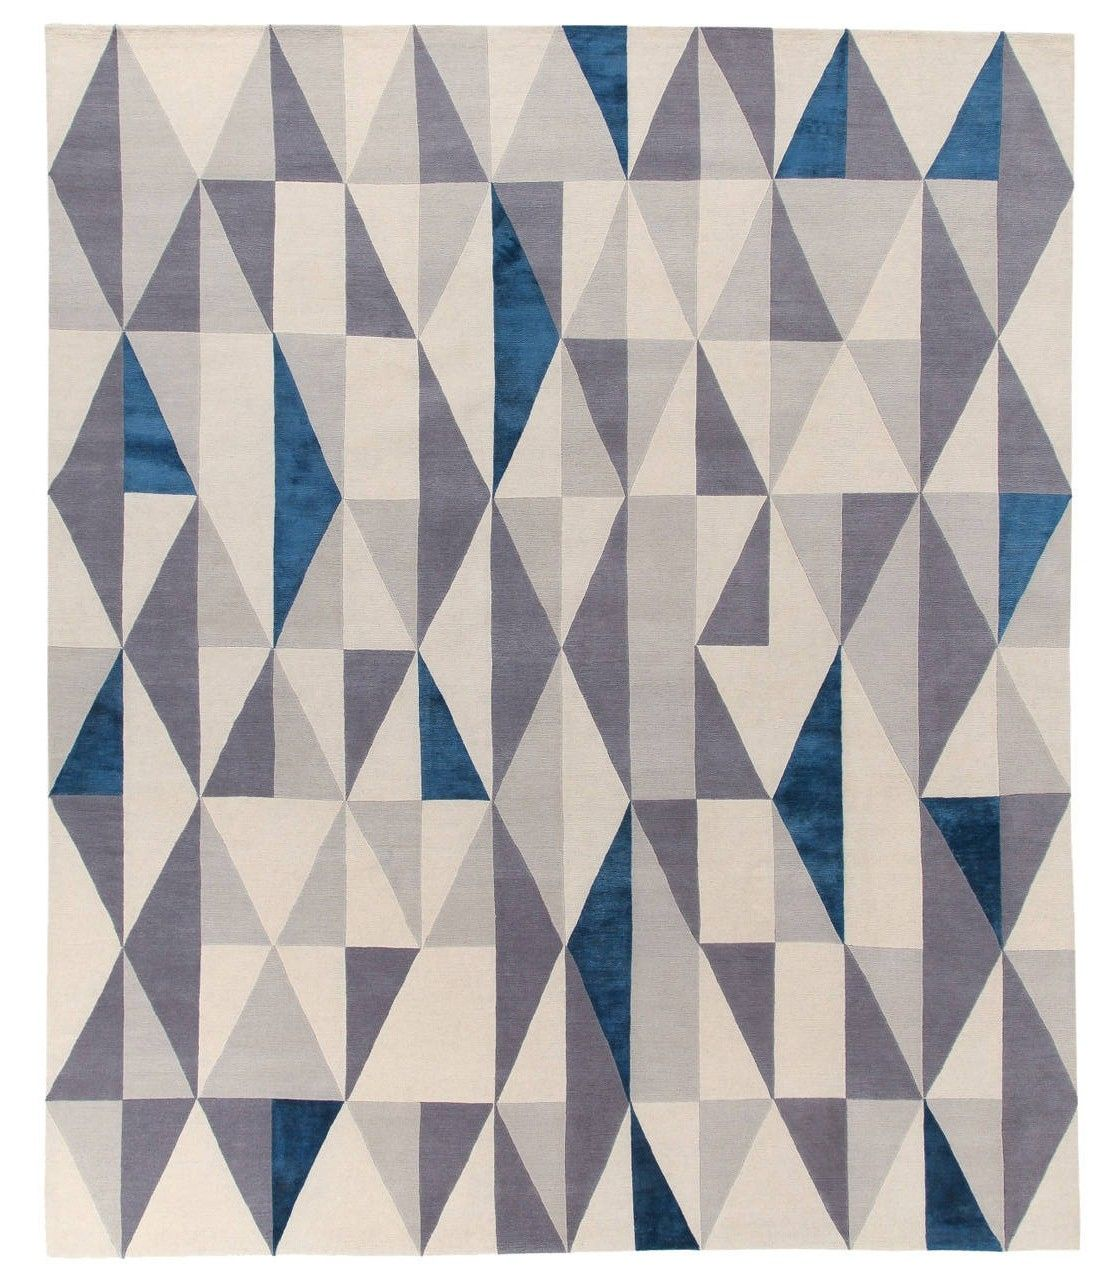 Paris Design Week Sept 2015 Favorite Finds Tapis Tapis Texture Gio Ponti